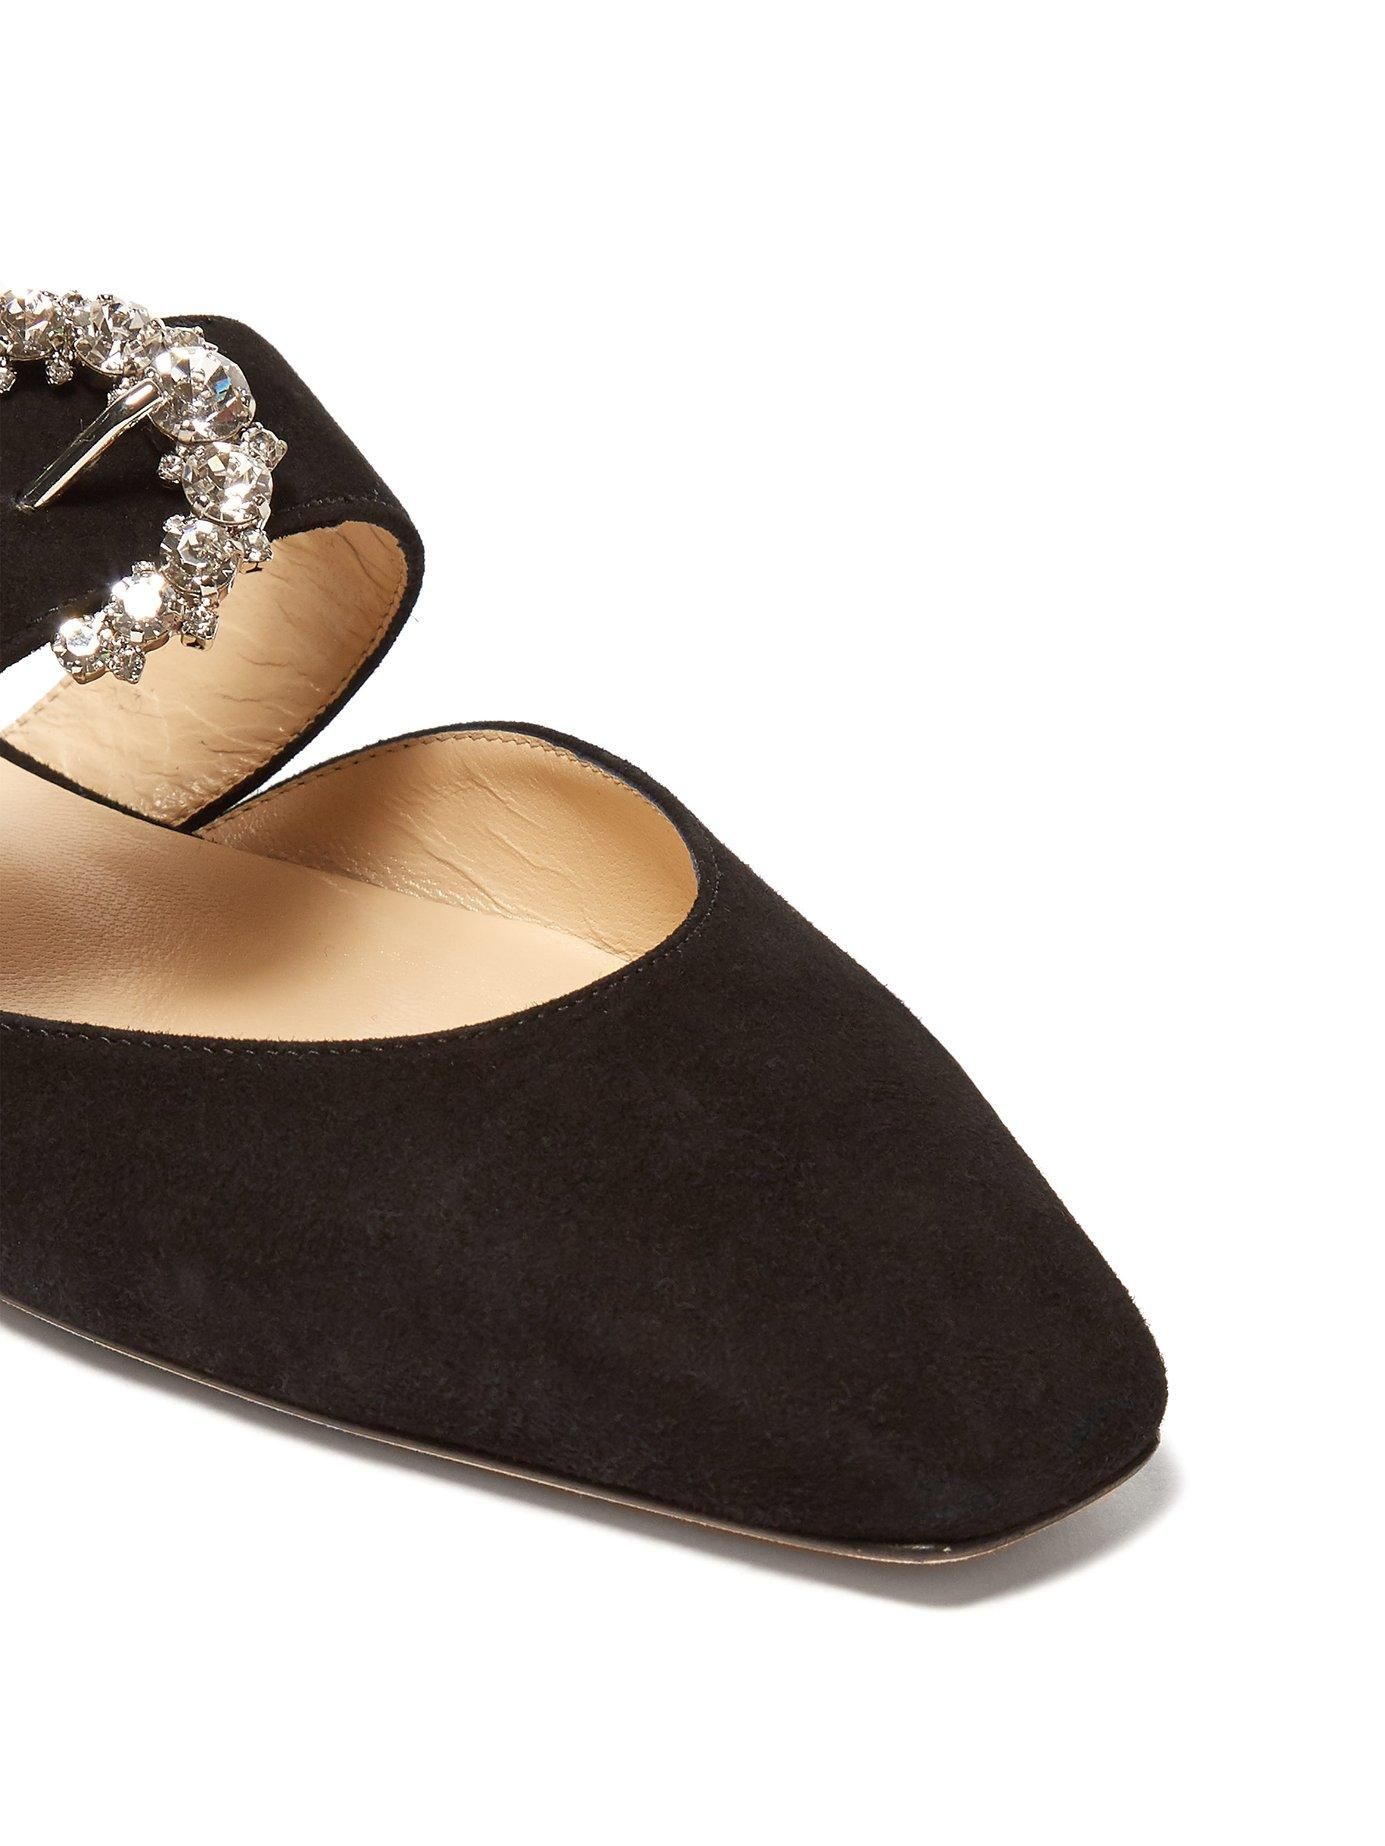 a5b0417a856 Lyst - Jimmy Choo Gee Crystal Buckle Suede Backless Loafers in Black